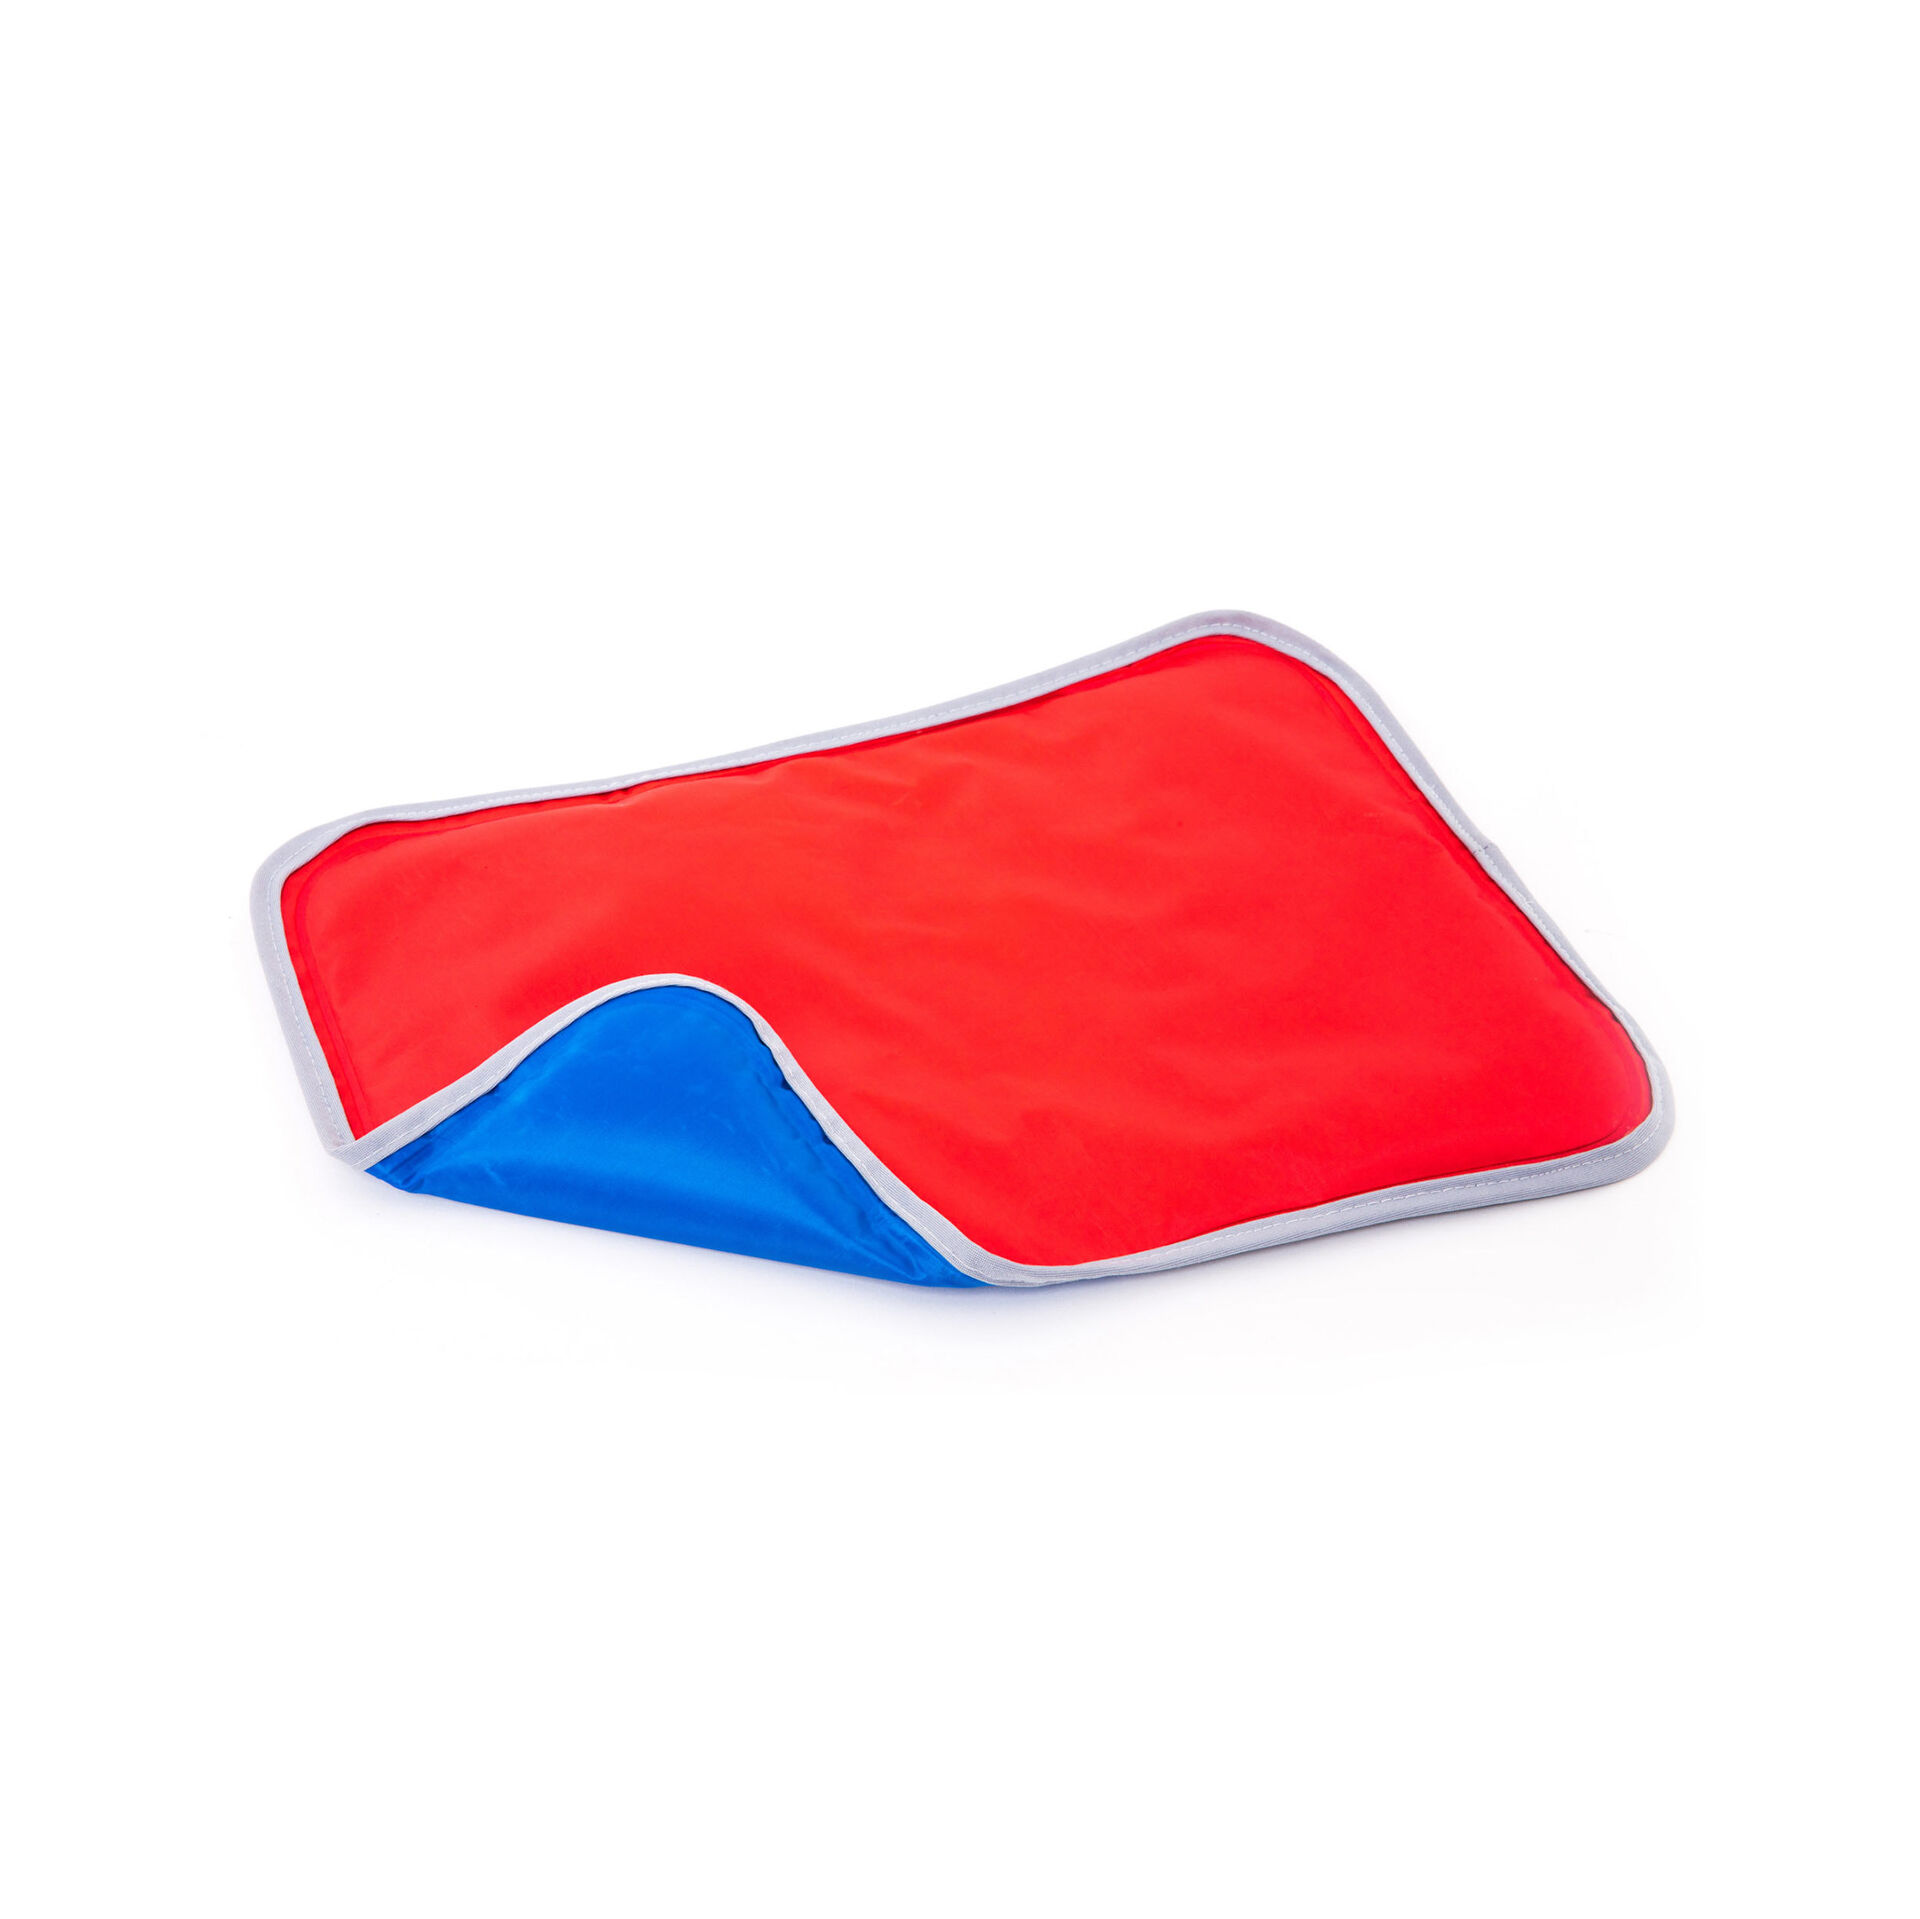 Coussin chaud/froid avec gel interne, , large